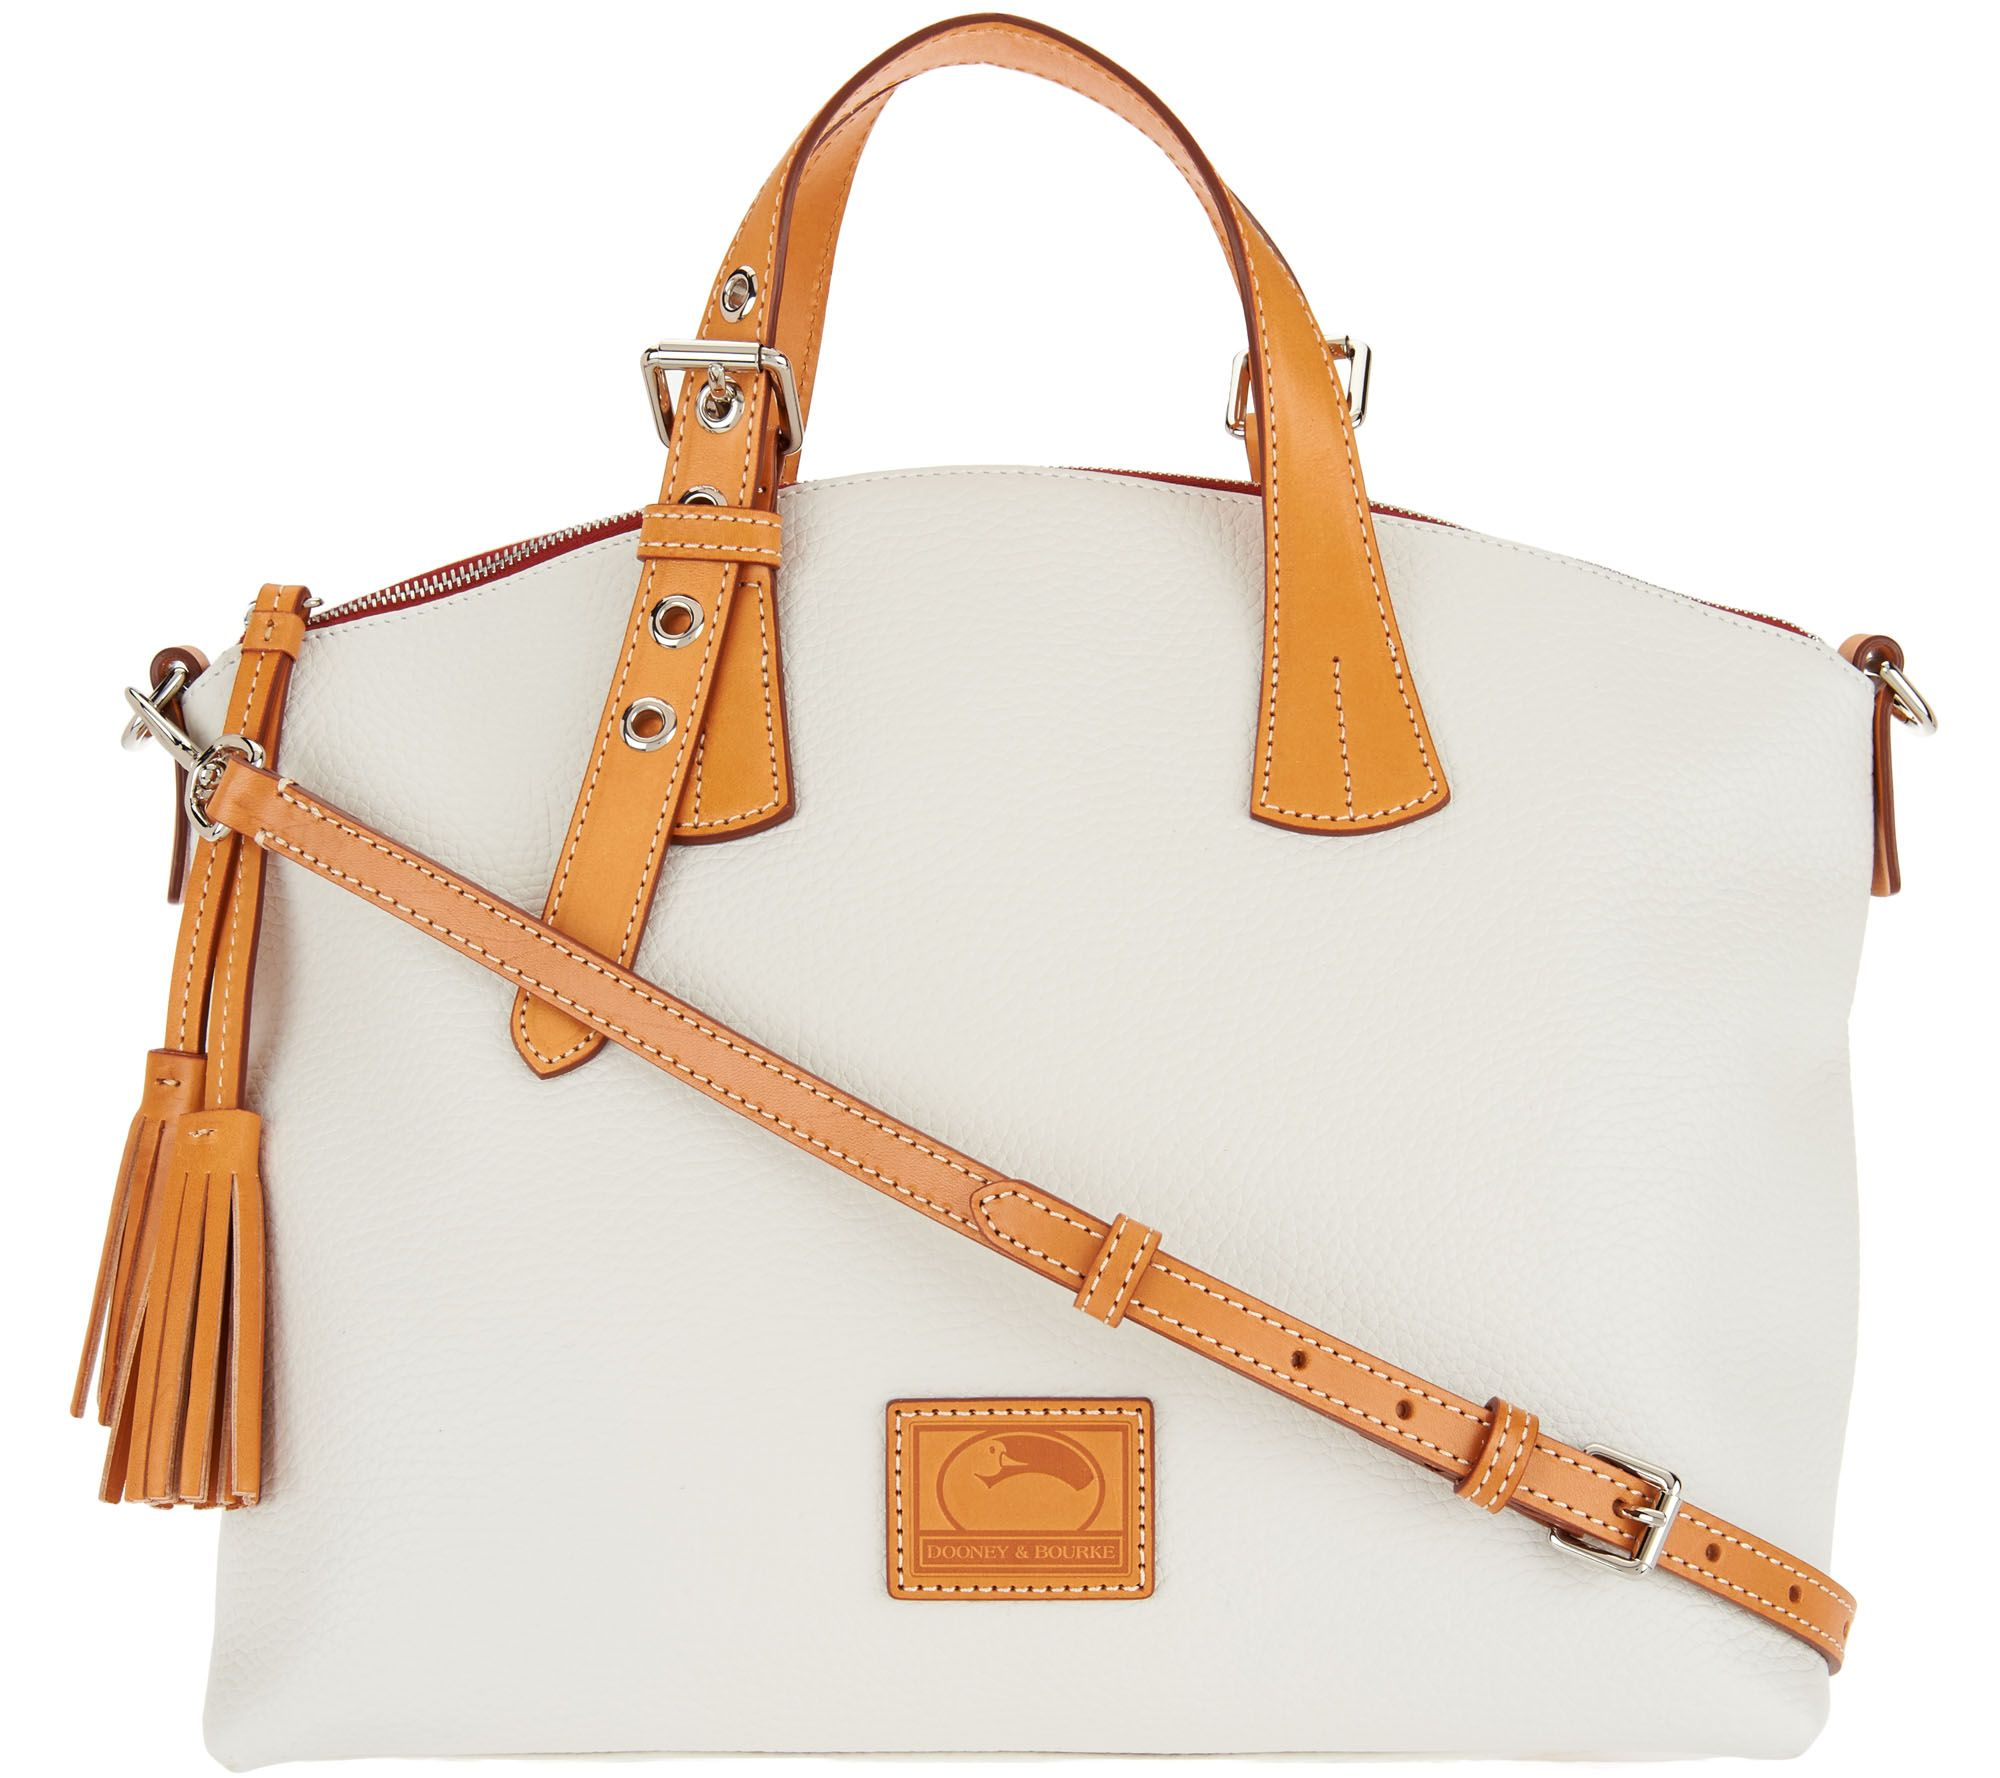 6623a1cf79bd Dooney   Bourke Pebble Leather Trina Satchel - Page 1 — QVC.com